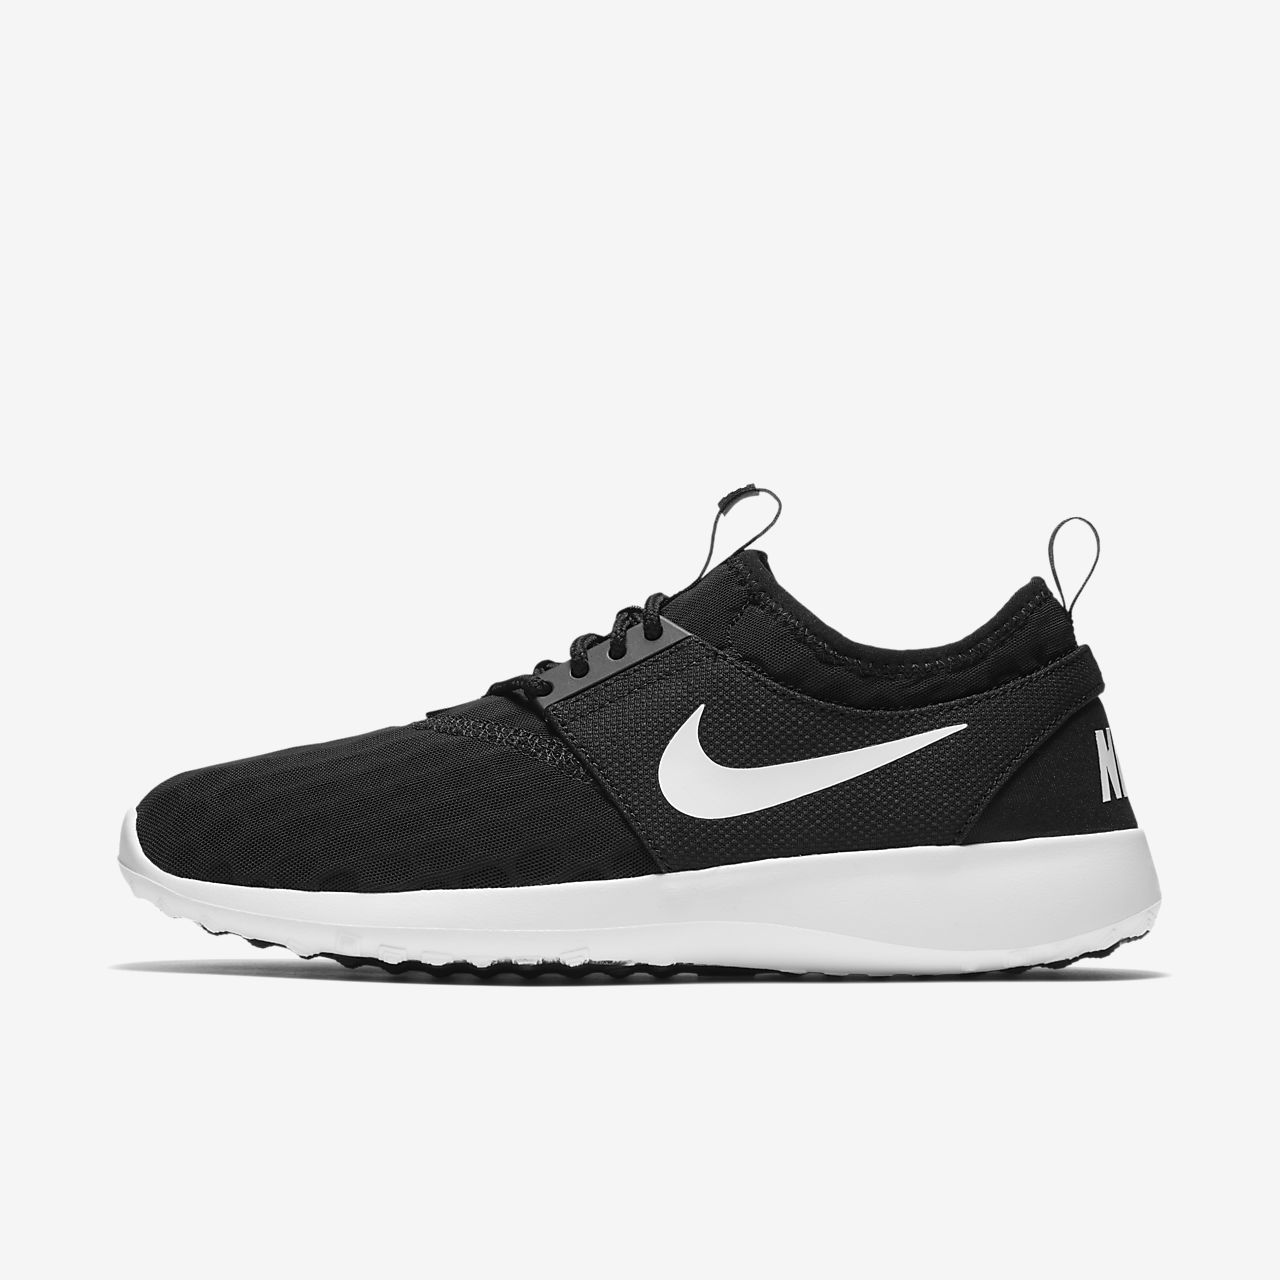 09175d888d3ed0 Low Resolution Nike Juvenate Women s Shoe Nike Juvenate Women s Shoe